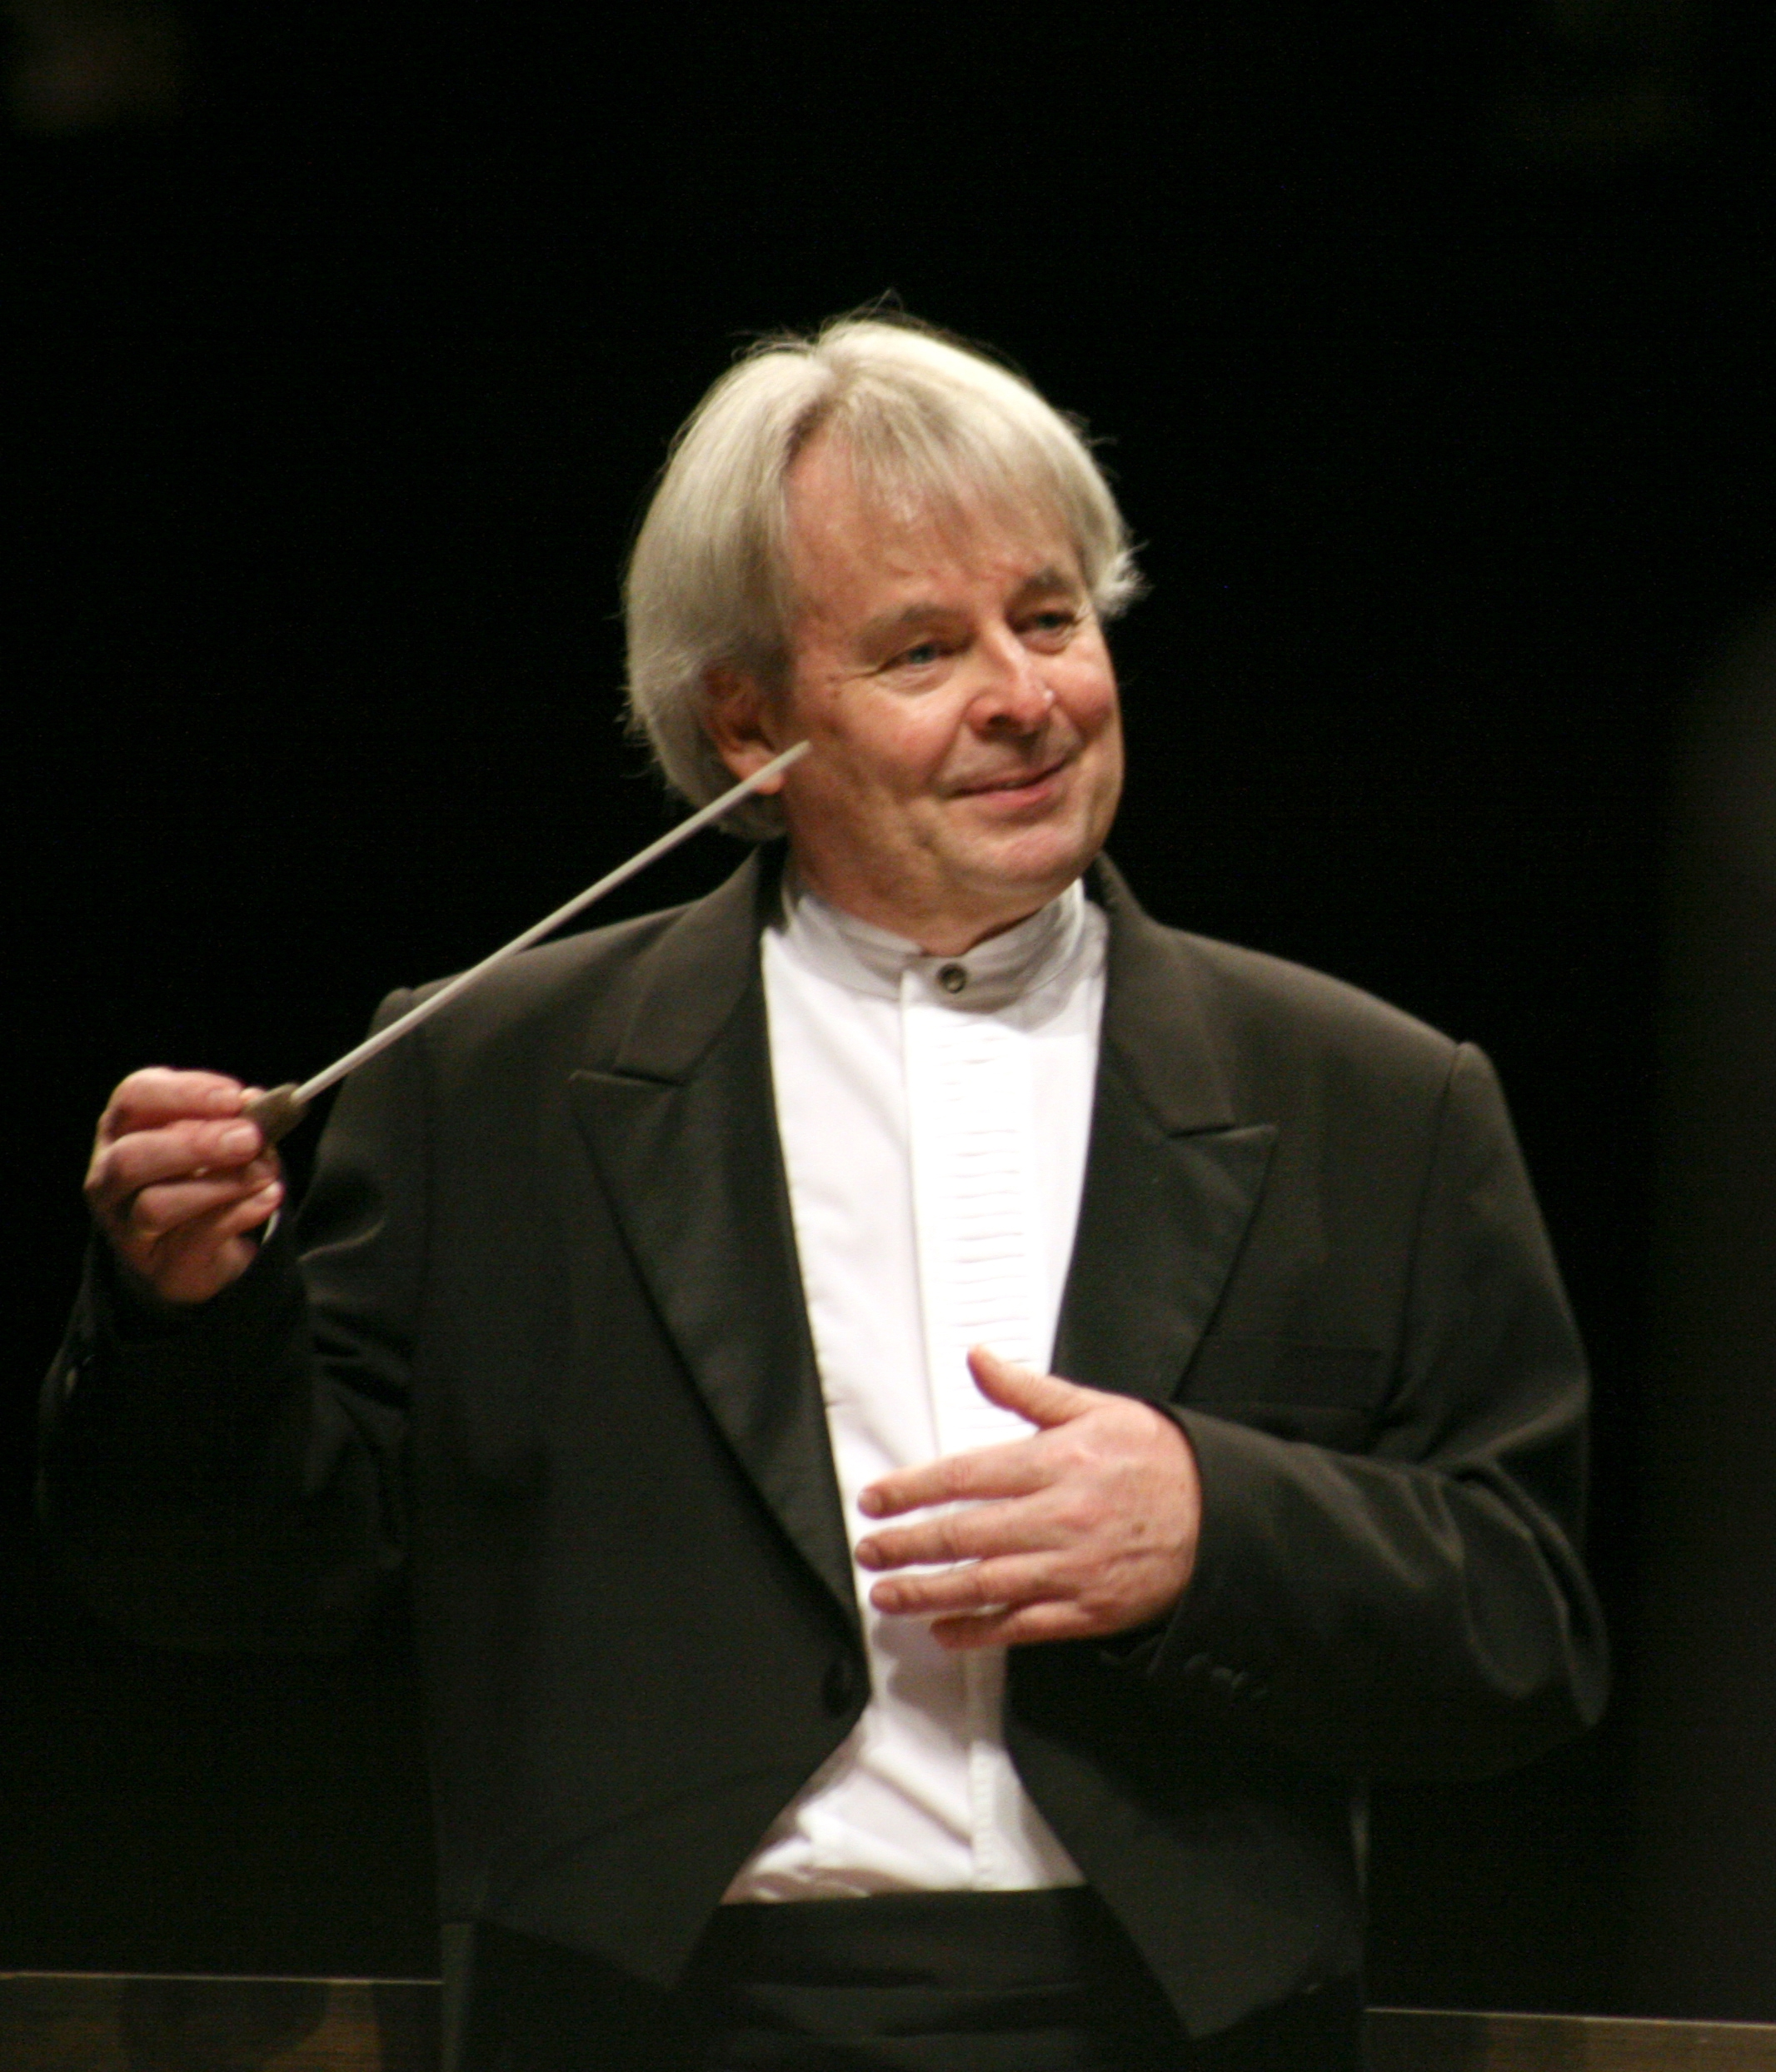 David Currie conducting